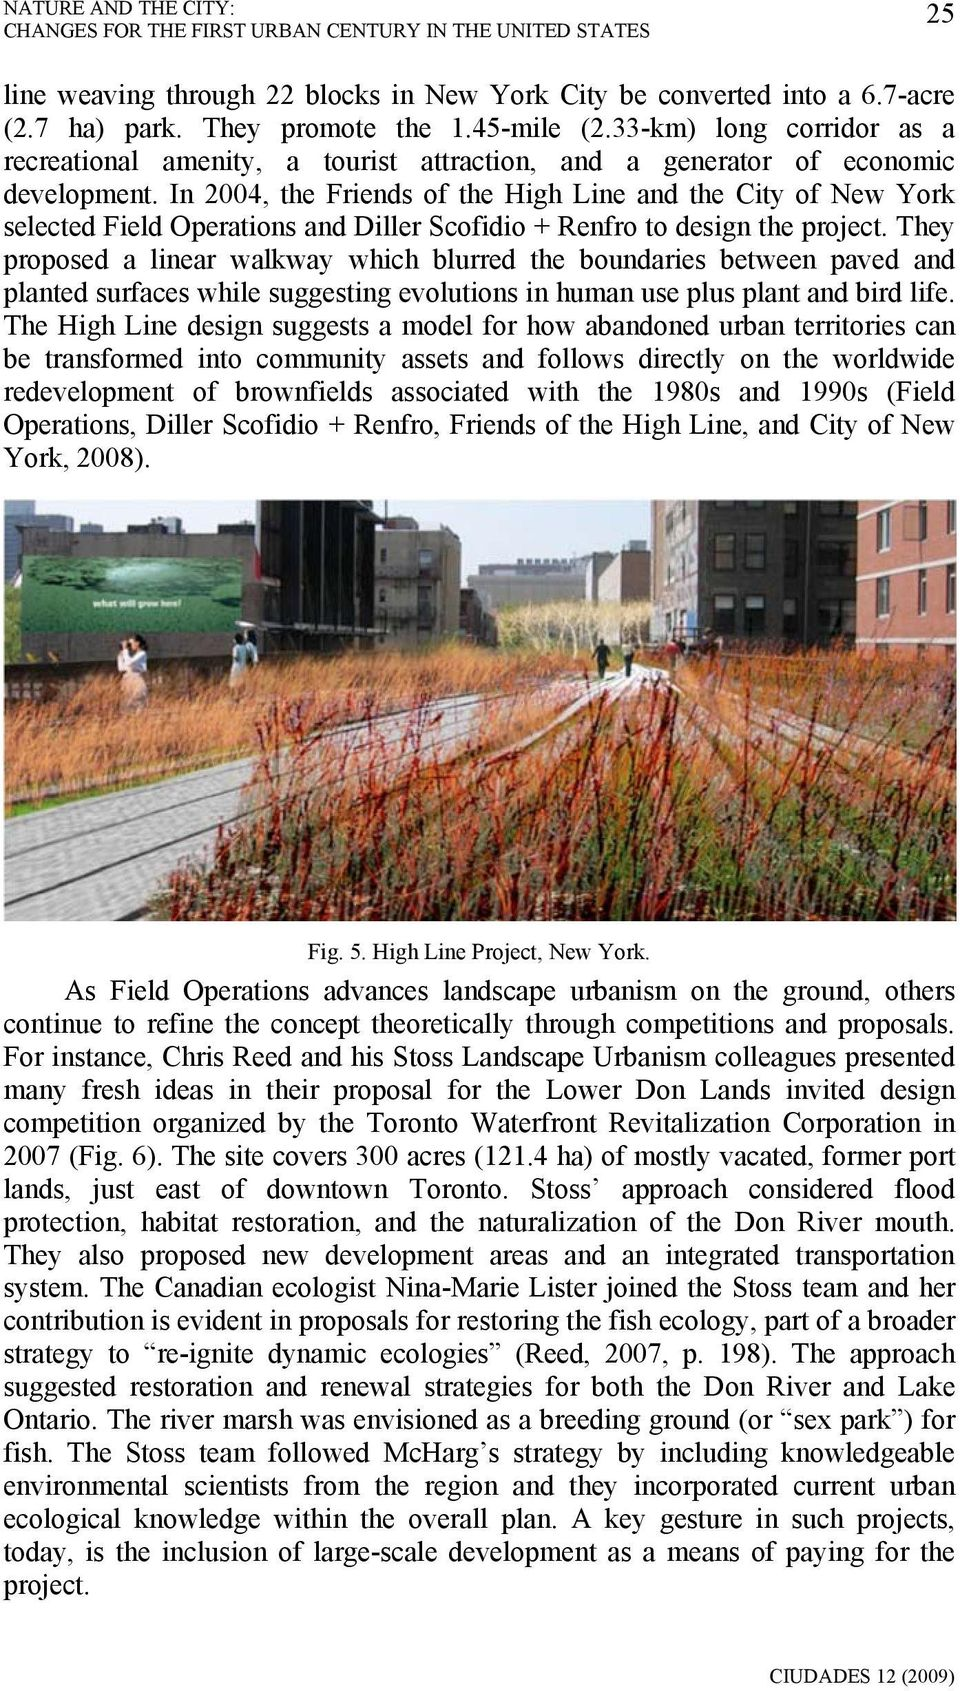 In 2004, the Friends of the High Line and the City of New York selected Field Operations and Diller Scofidio + Renfro to design the project.